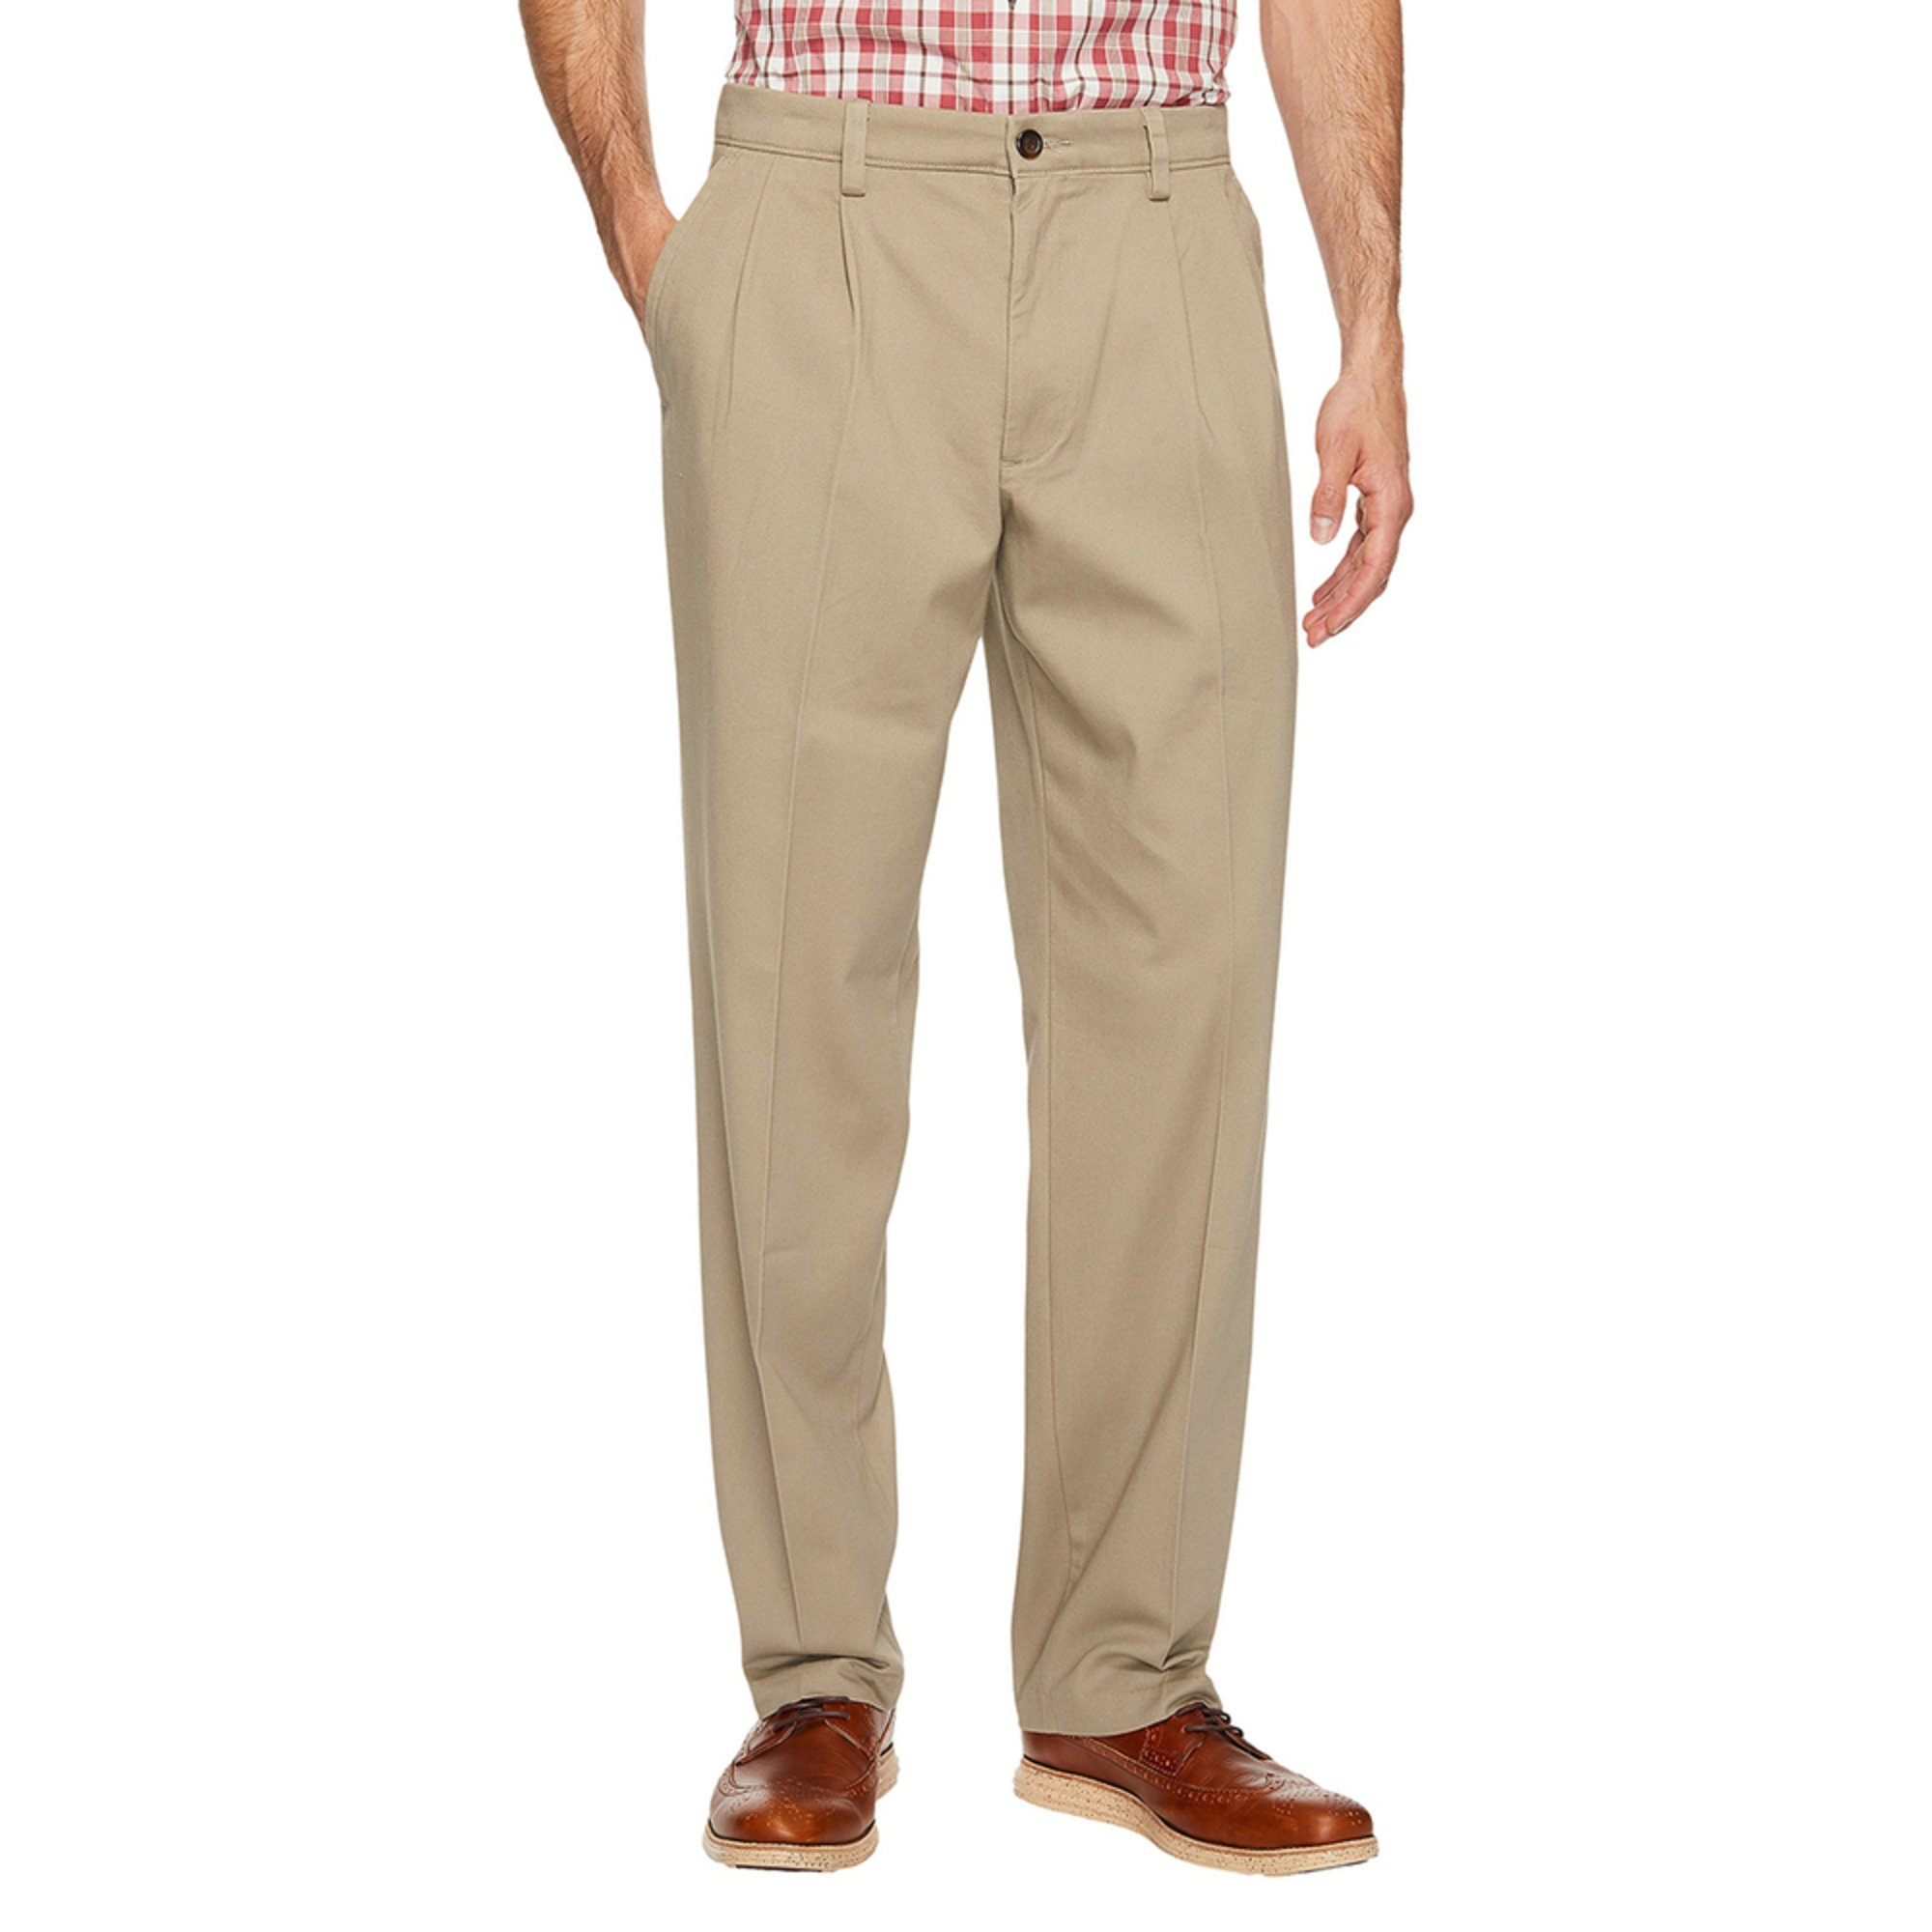 91bf10f6eb45cd Dockers Men's Easy Khaki Stretch Classic Fit Pleated Pants | Casual ...